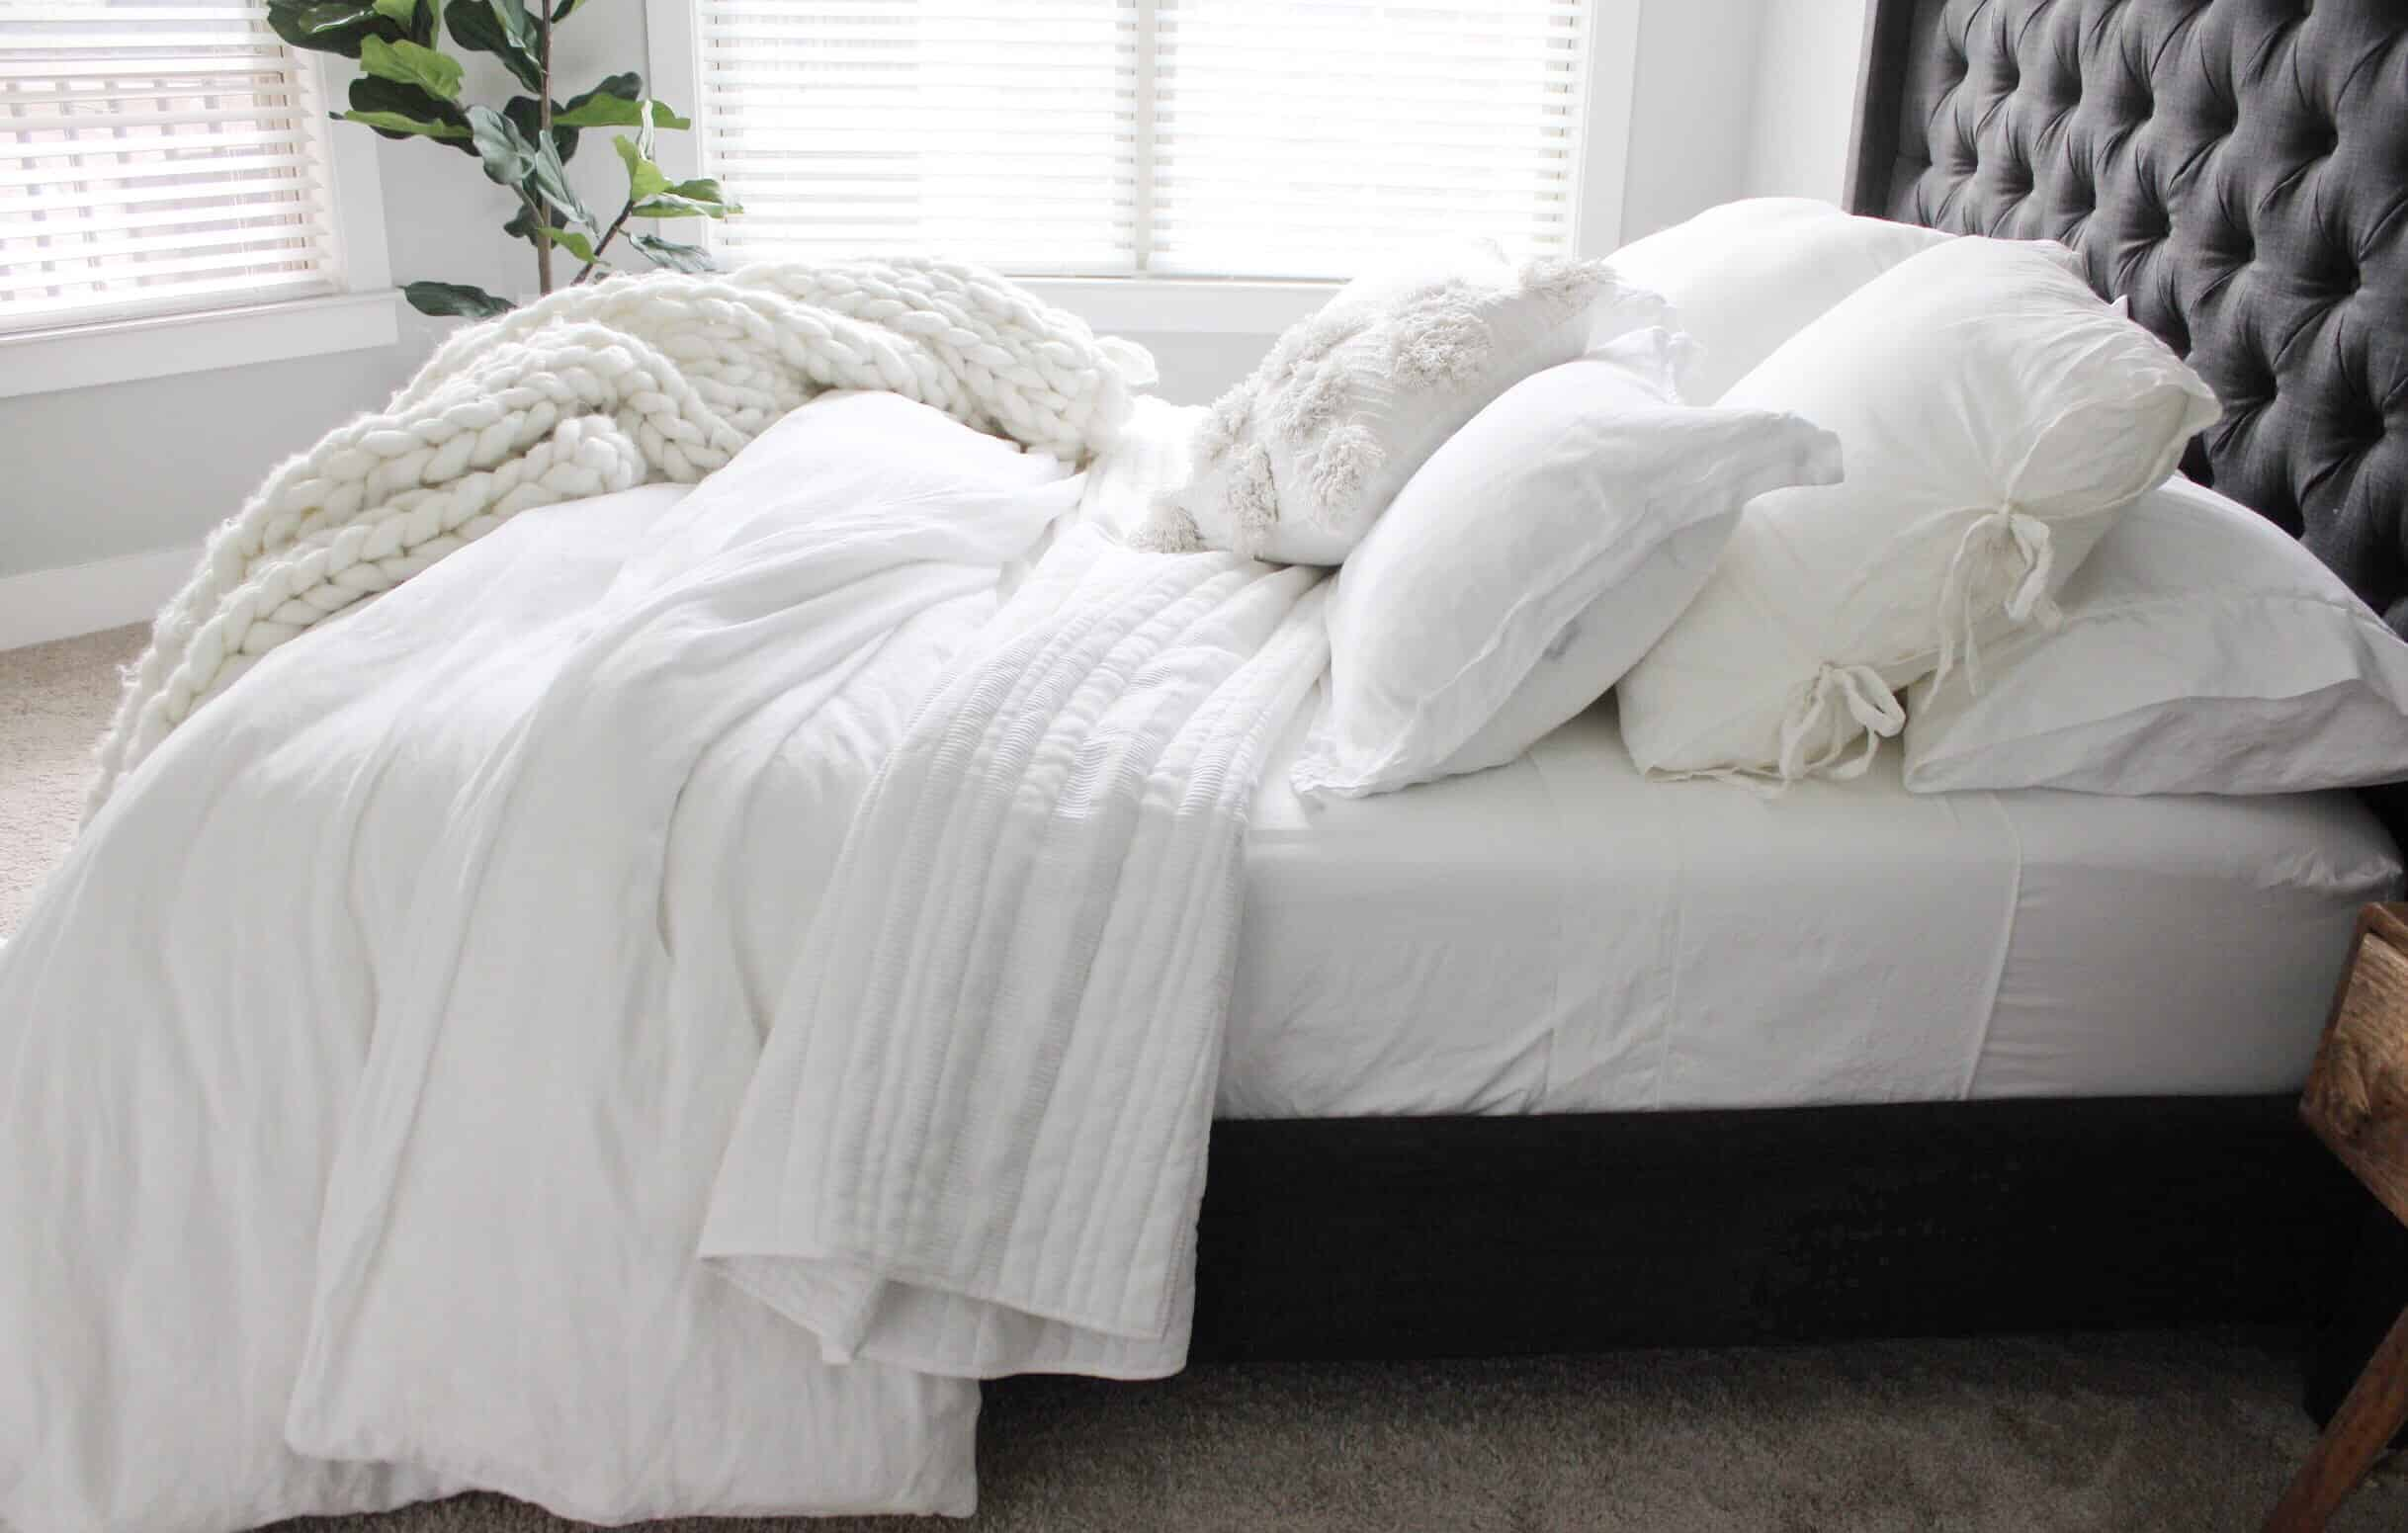 5 Tips For Creating An All White Bed Caitlin De Lay Blog